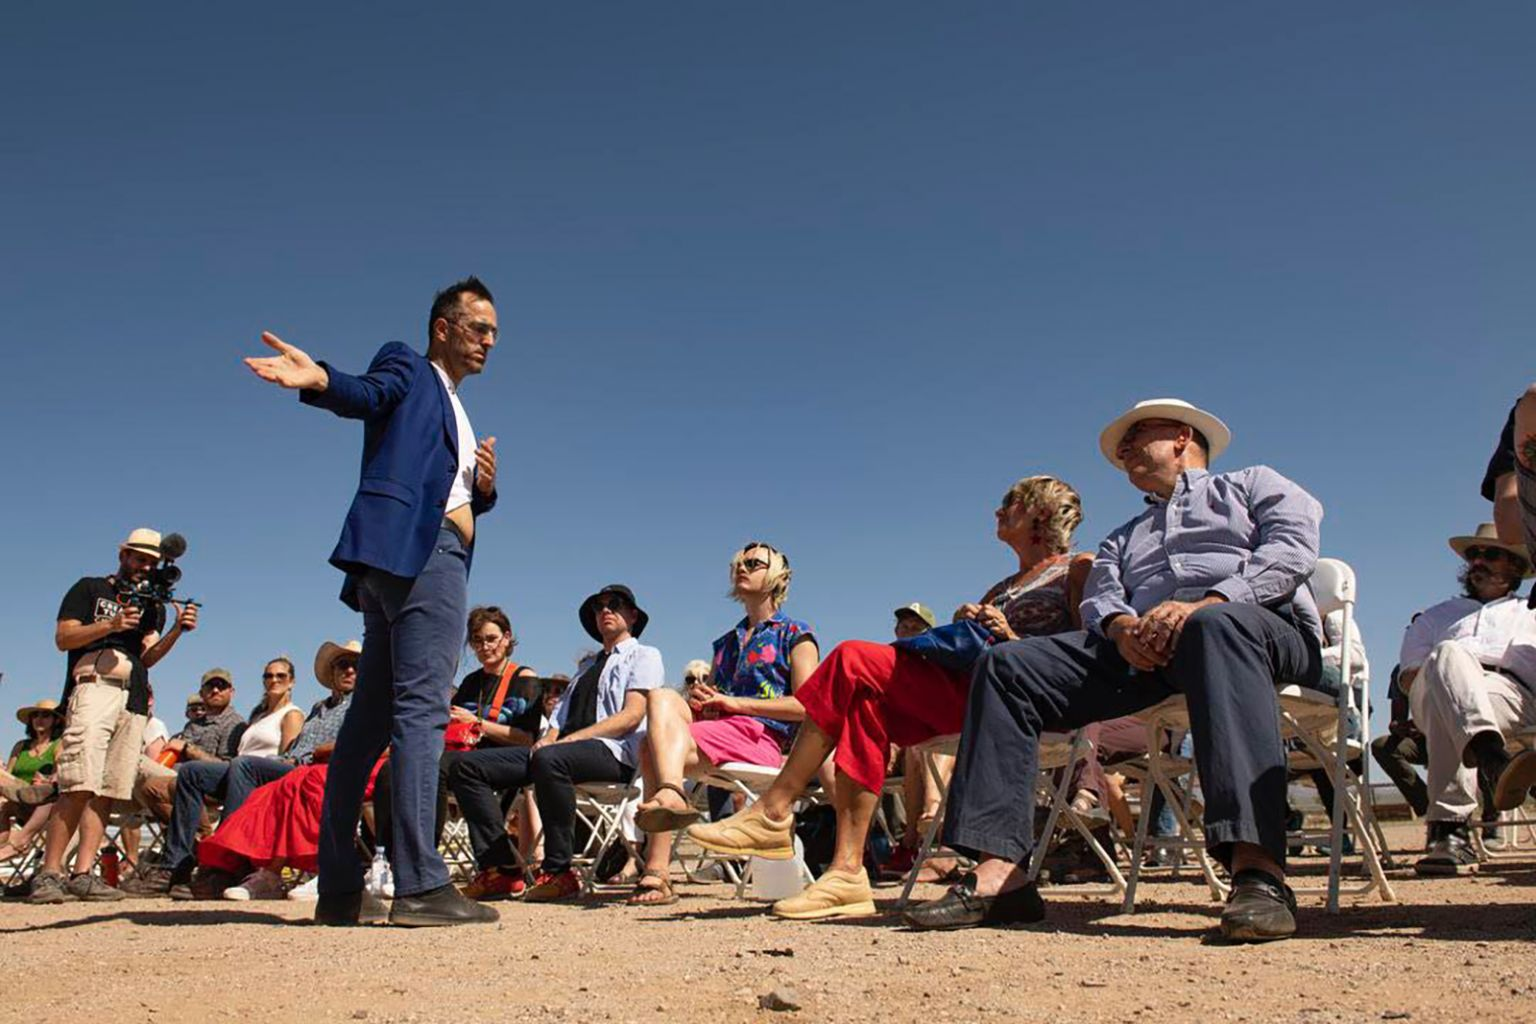 man performs for an audience in the desert